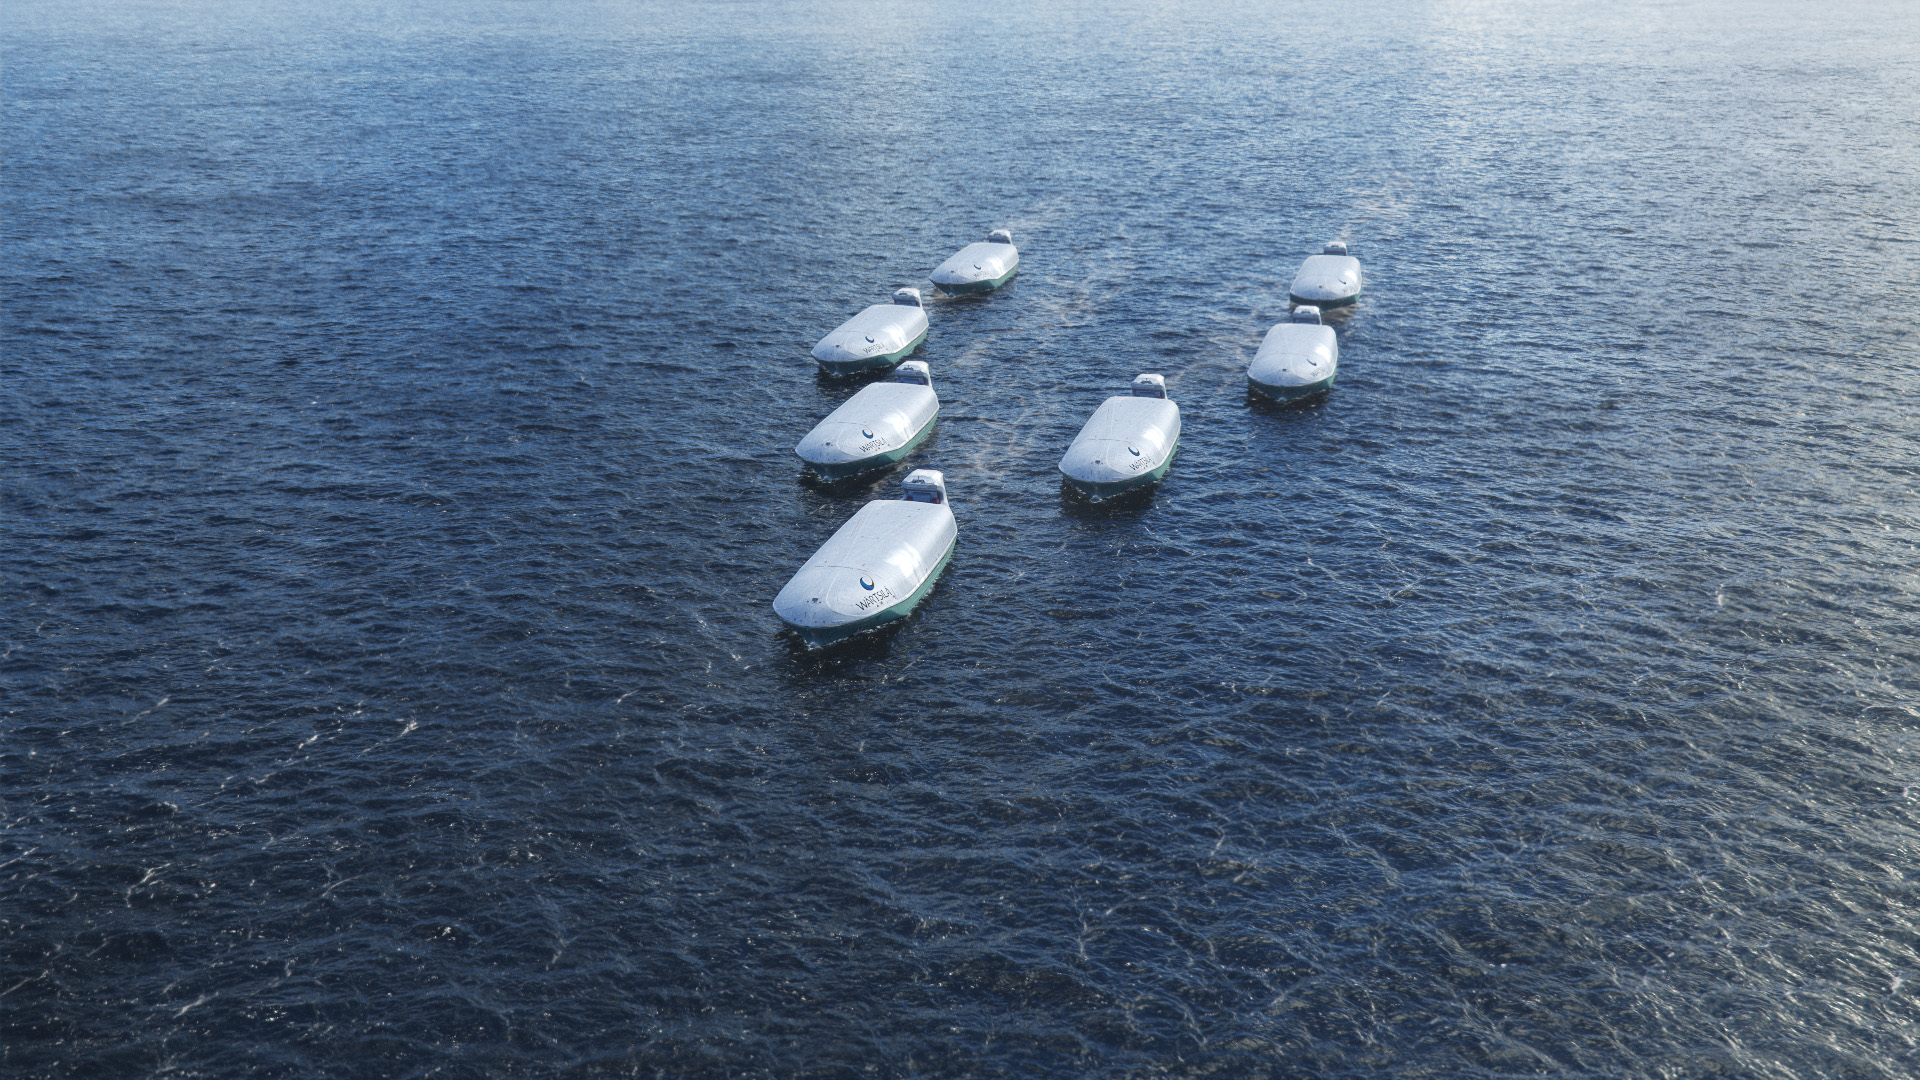 Wärtsilä explores future trends and concepts